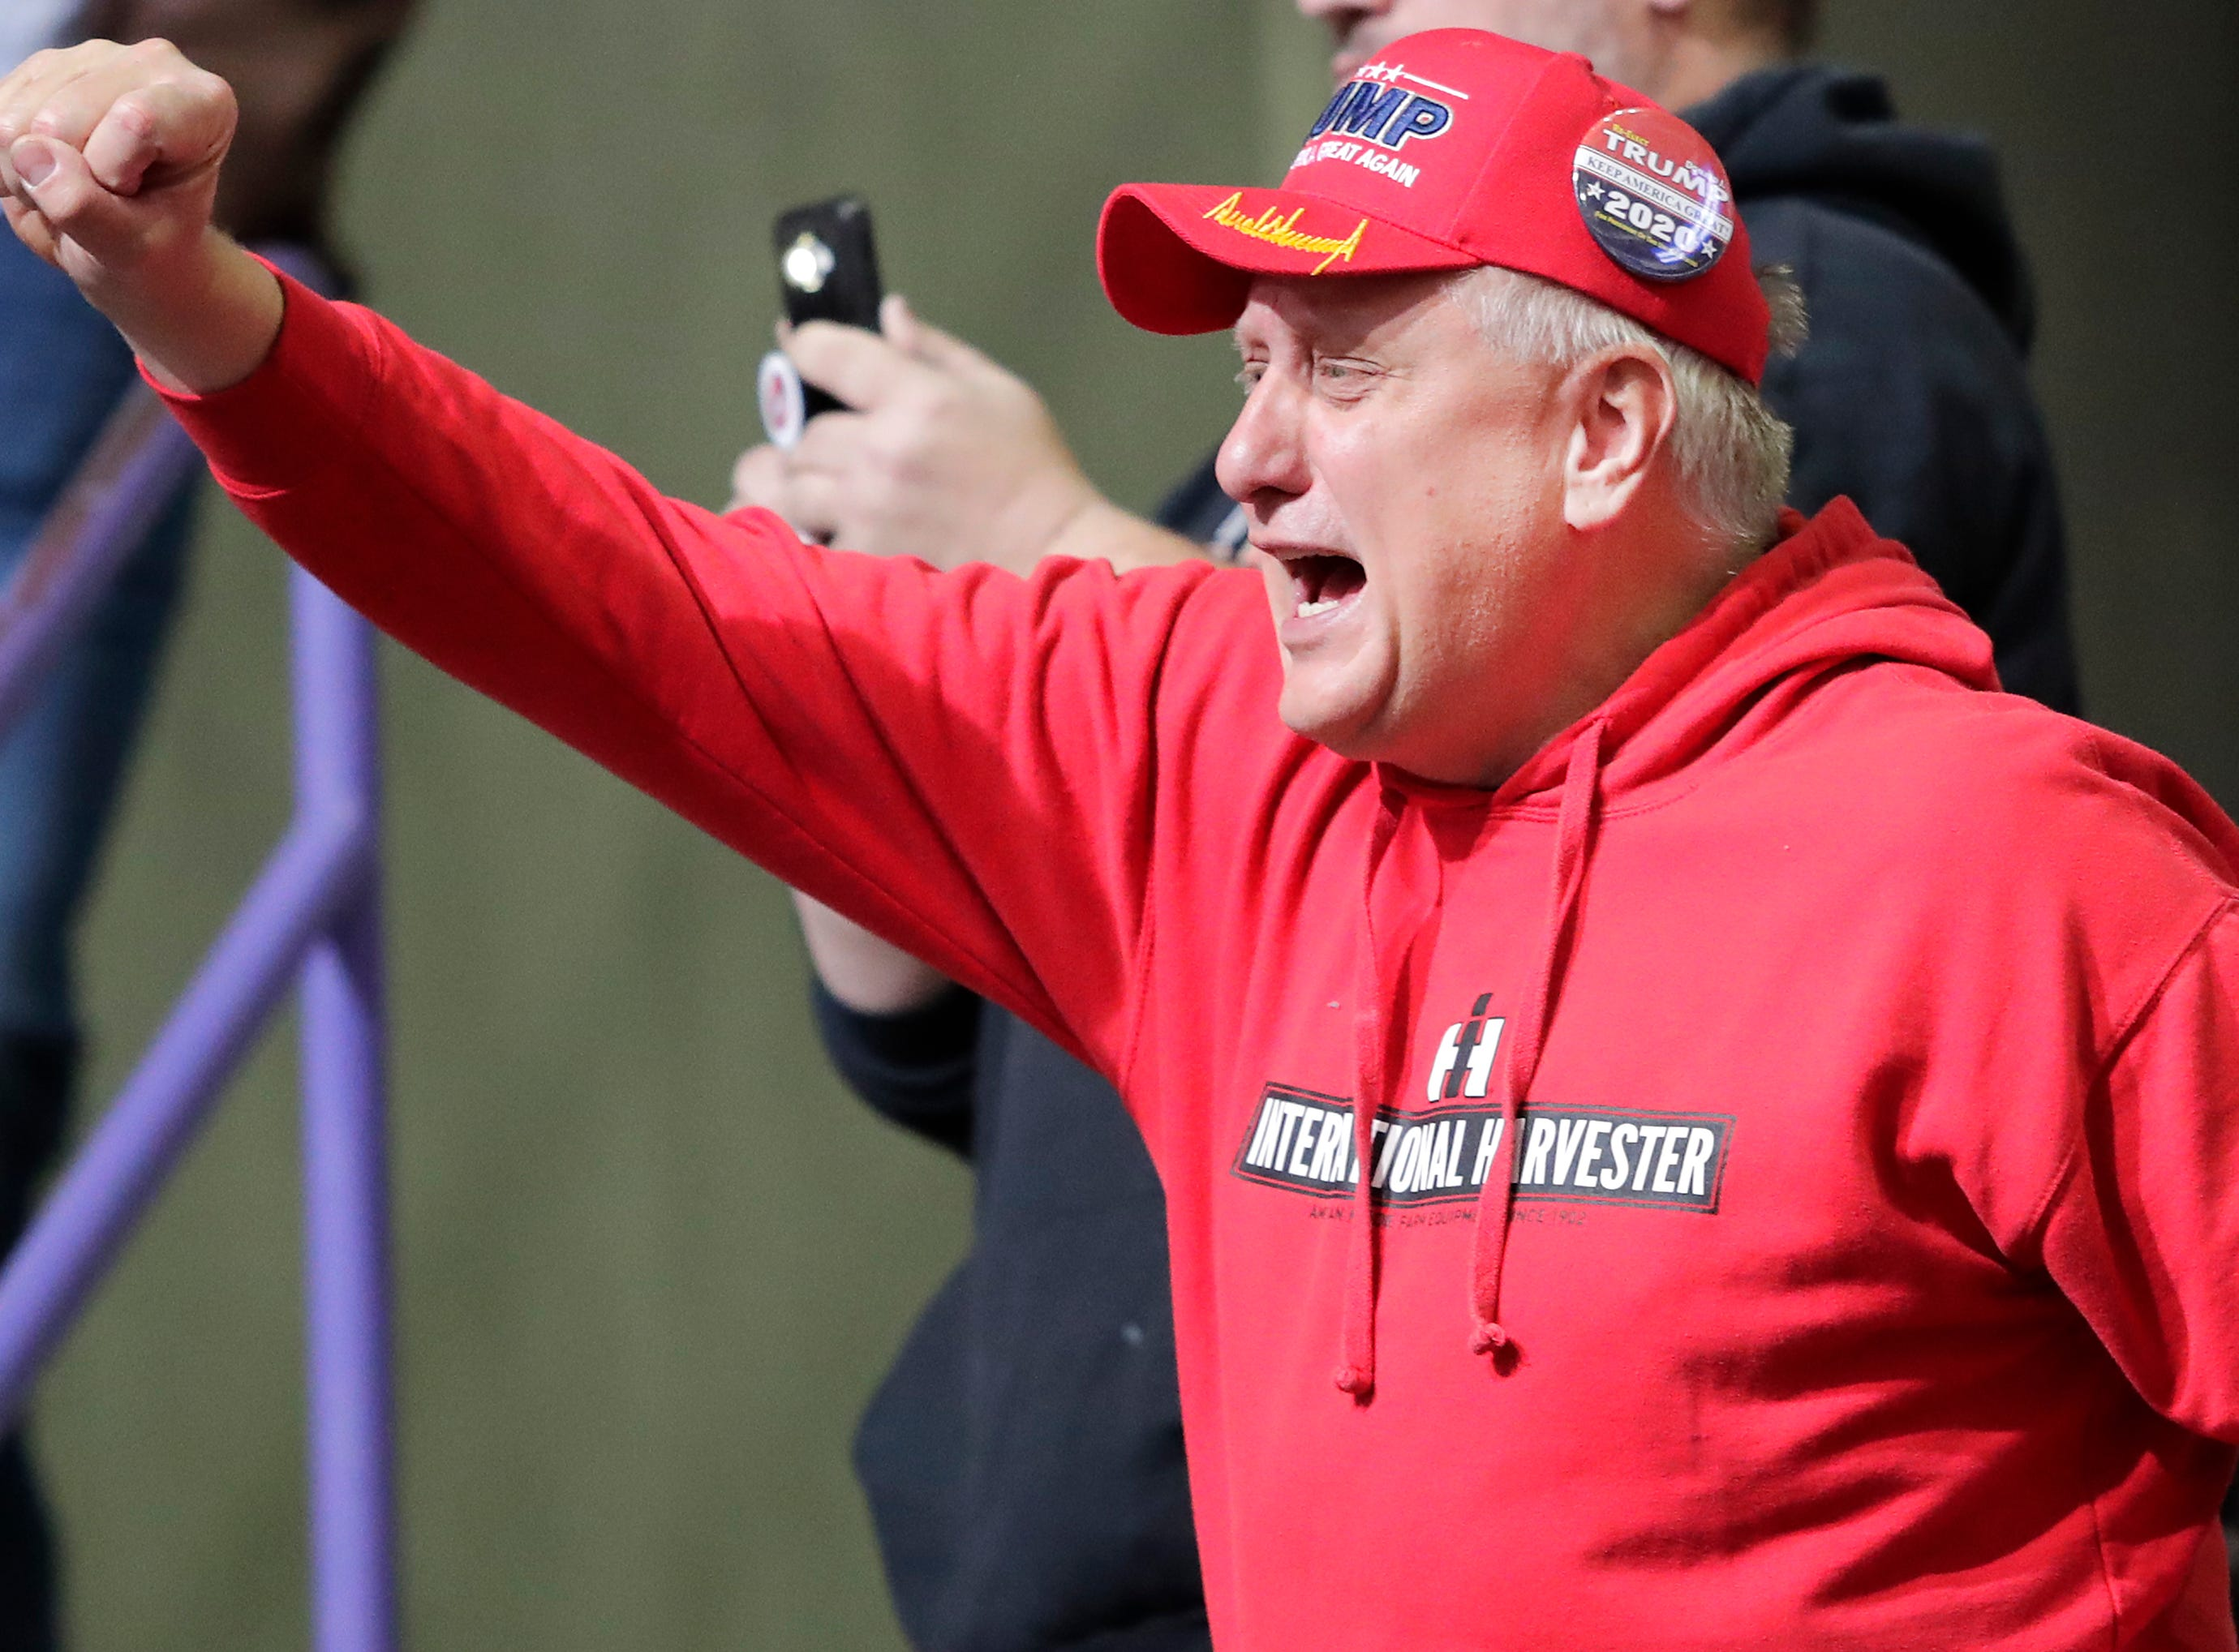 A supporter  cheers during a President Donald J. Trump's Make America Great Again Rally on Saturday, April 27, 2019, at the Resch Center in Green Bay, Wis. Wm. Glasheen/USA TODAY NETWORK-Wisconsin.